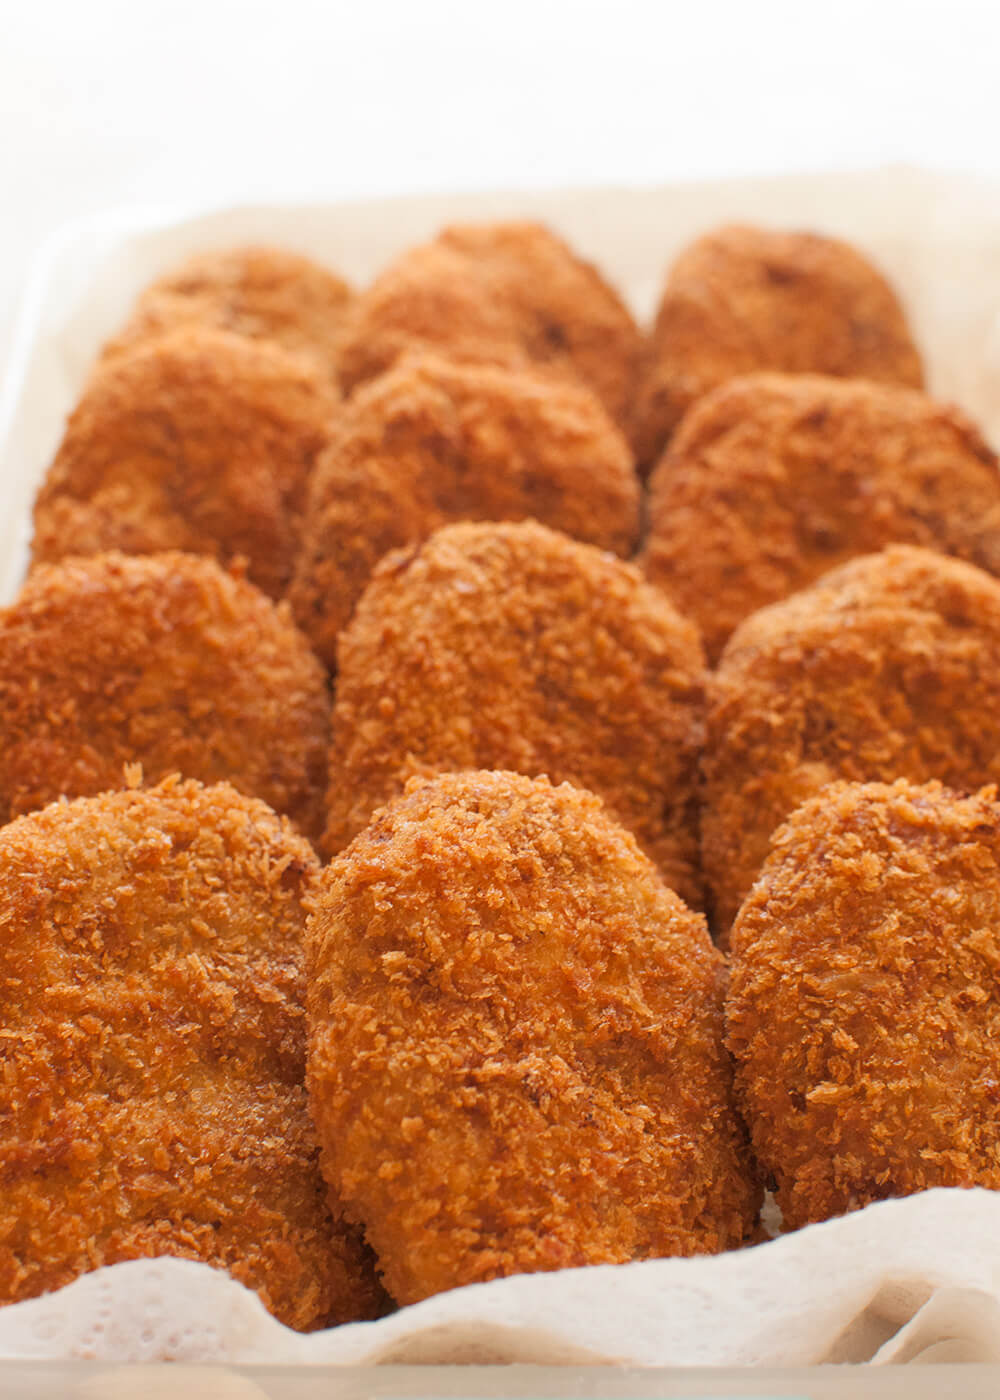 Crunchy outside, fluffy and a little bit sweet inside. Korokke (コロッケ, potato and ground meat croquette) is one of the very popular Japanese home cooking dishes. Have it with tonkatsu sauce (sweet Worcestershire sauce).